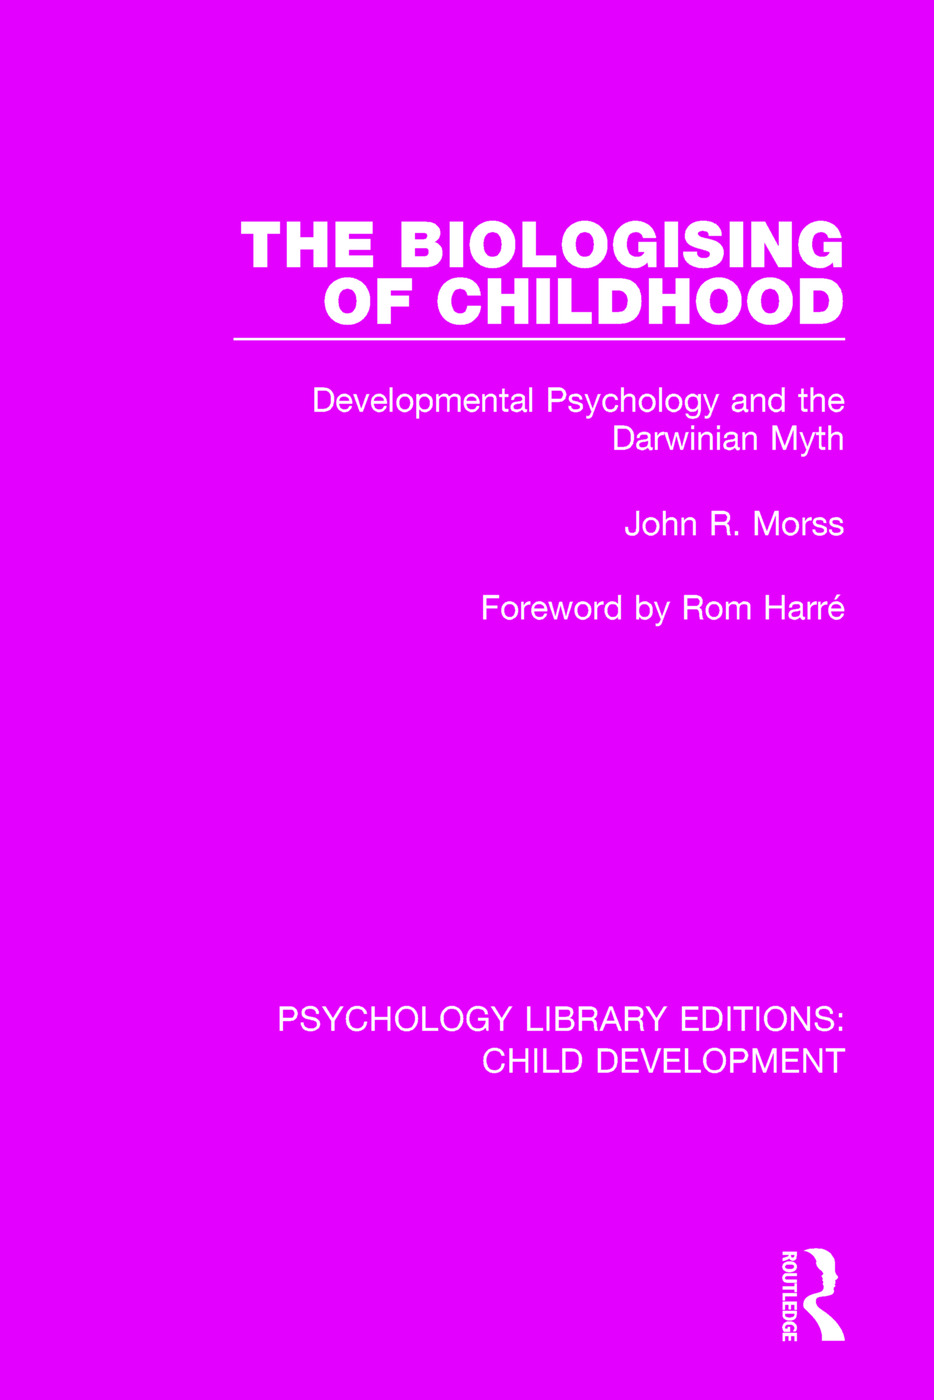 The Biologising of Childhood: Developmental Psychology and the Darwinian Myth book cover